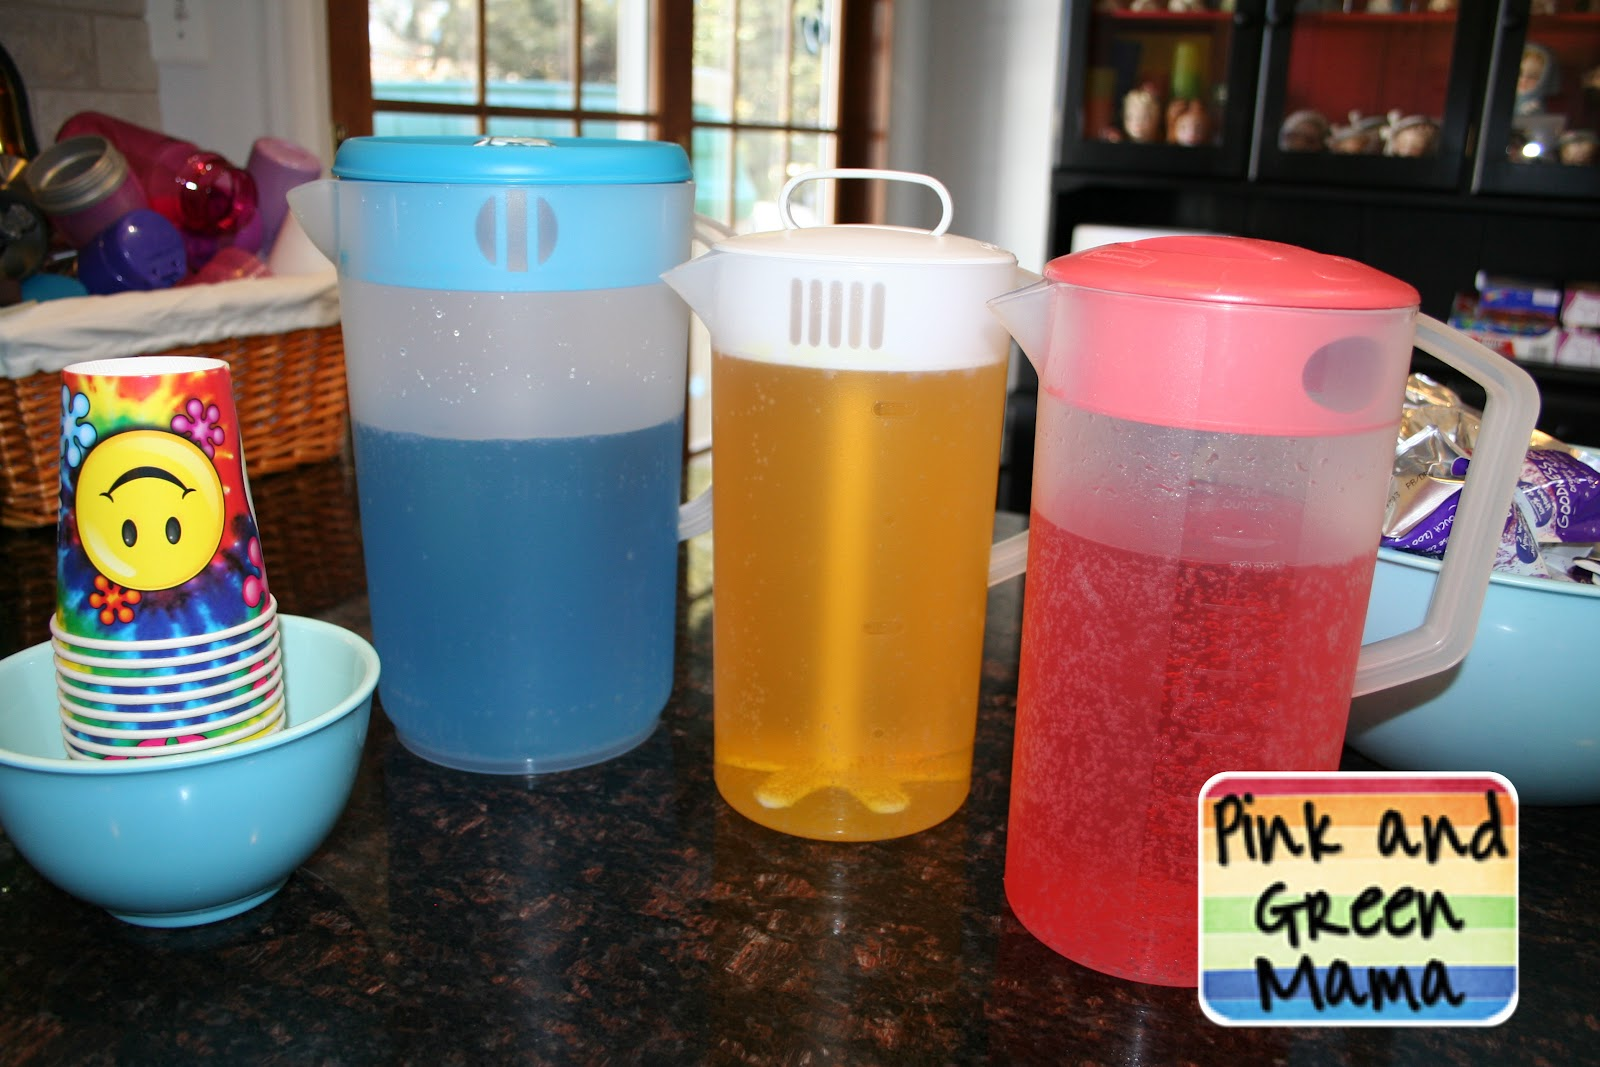 Pink and Green Mama: * Color Mixing Fun with Drinks and Water: pinkandgreenmama.blogspot.com/2012/03/color-mixing-fun-with-drinks...